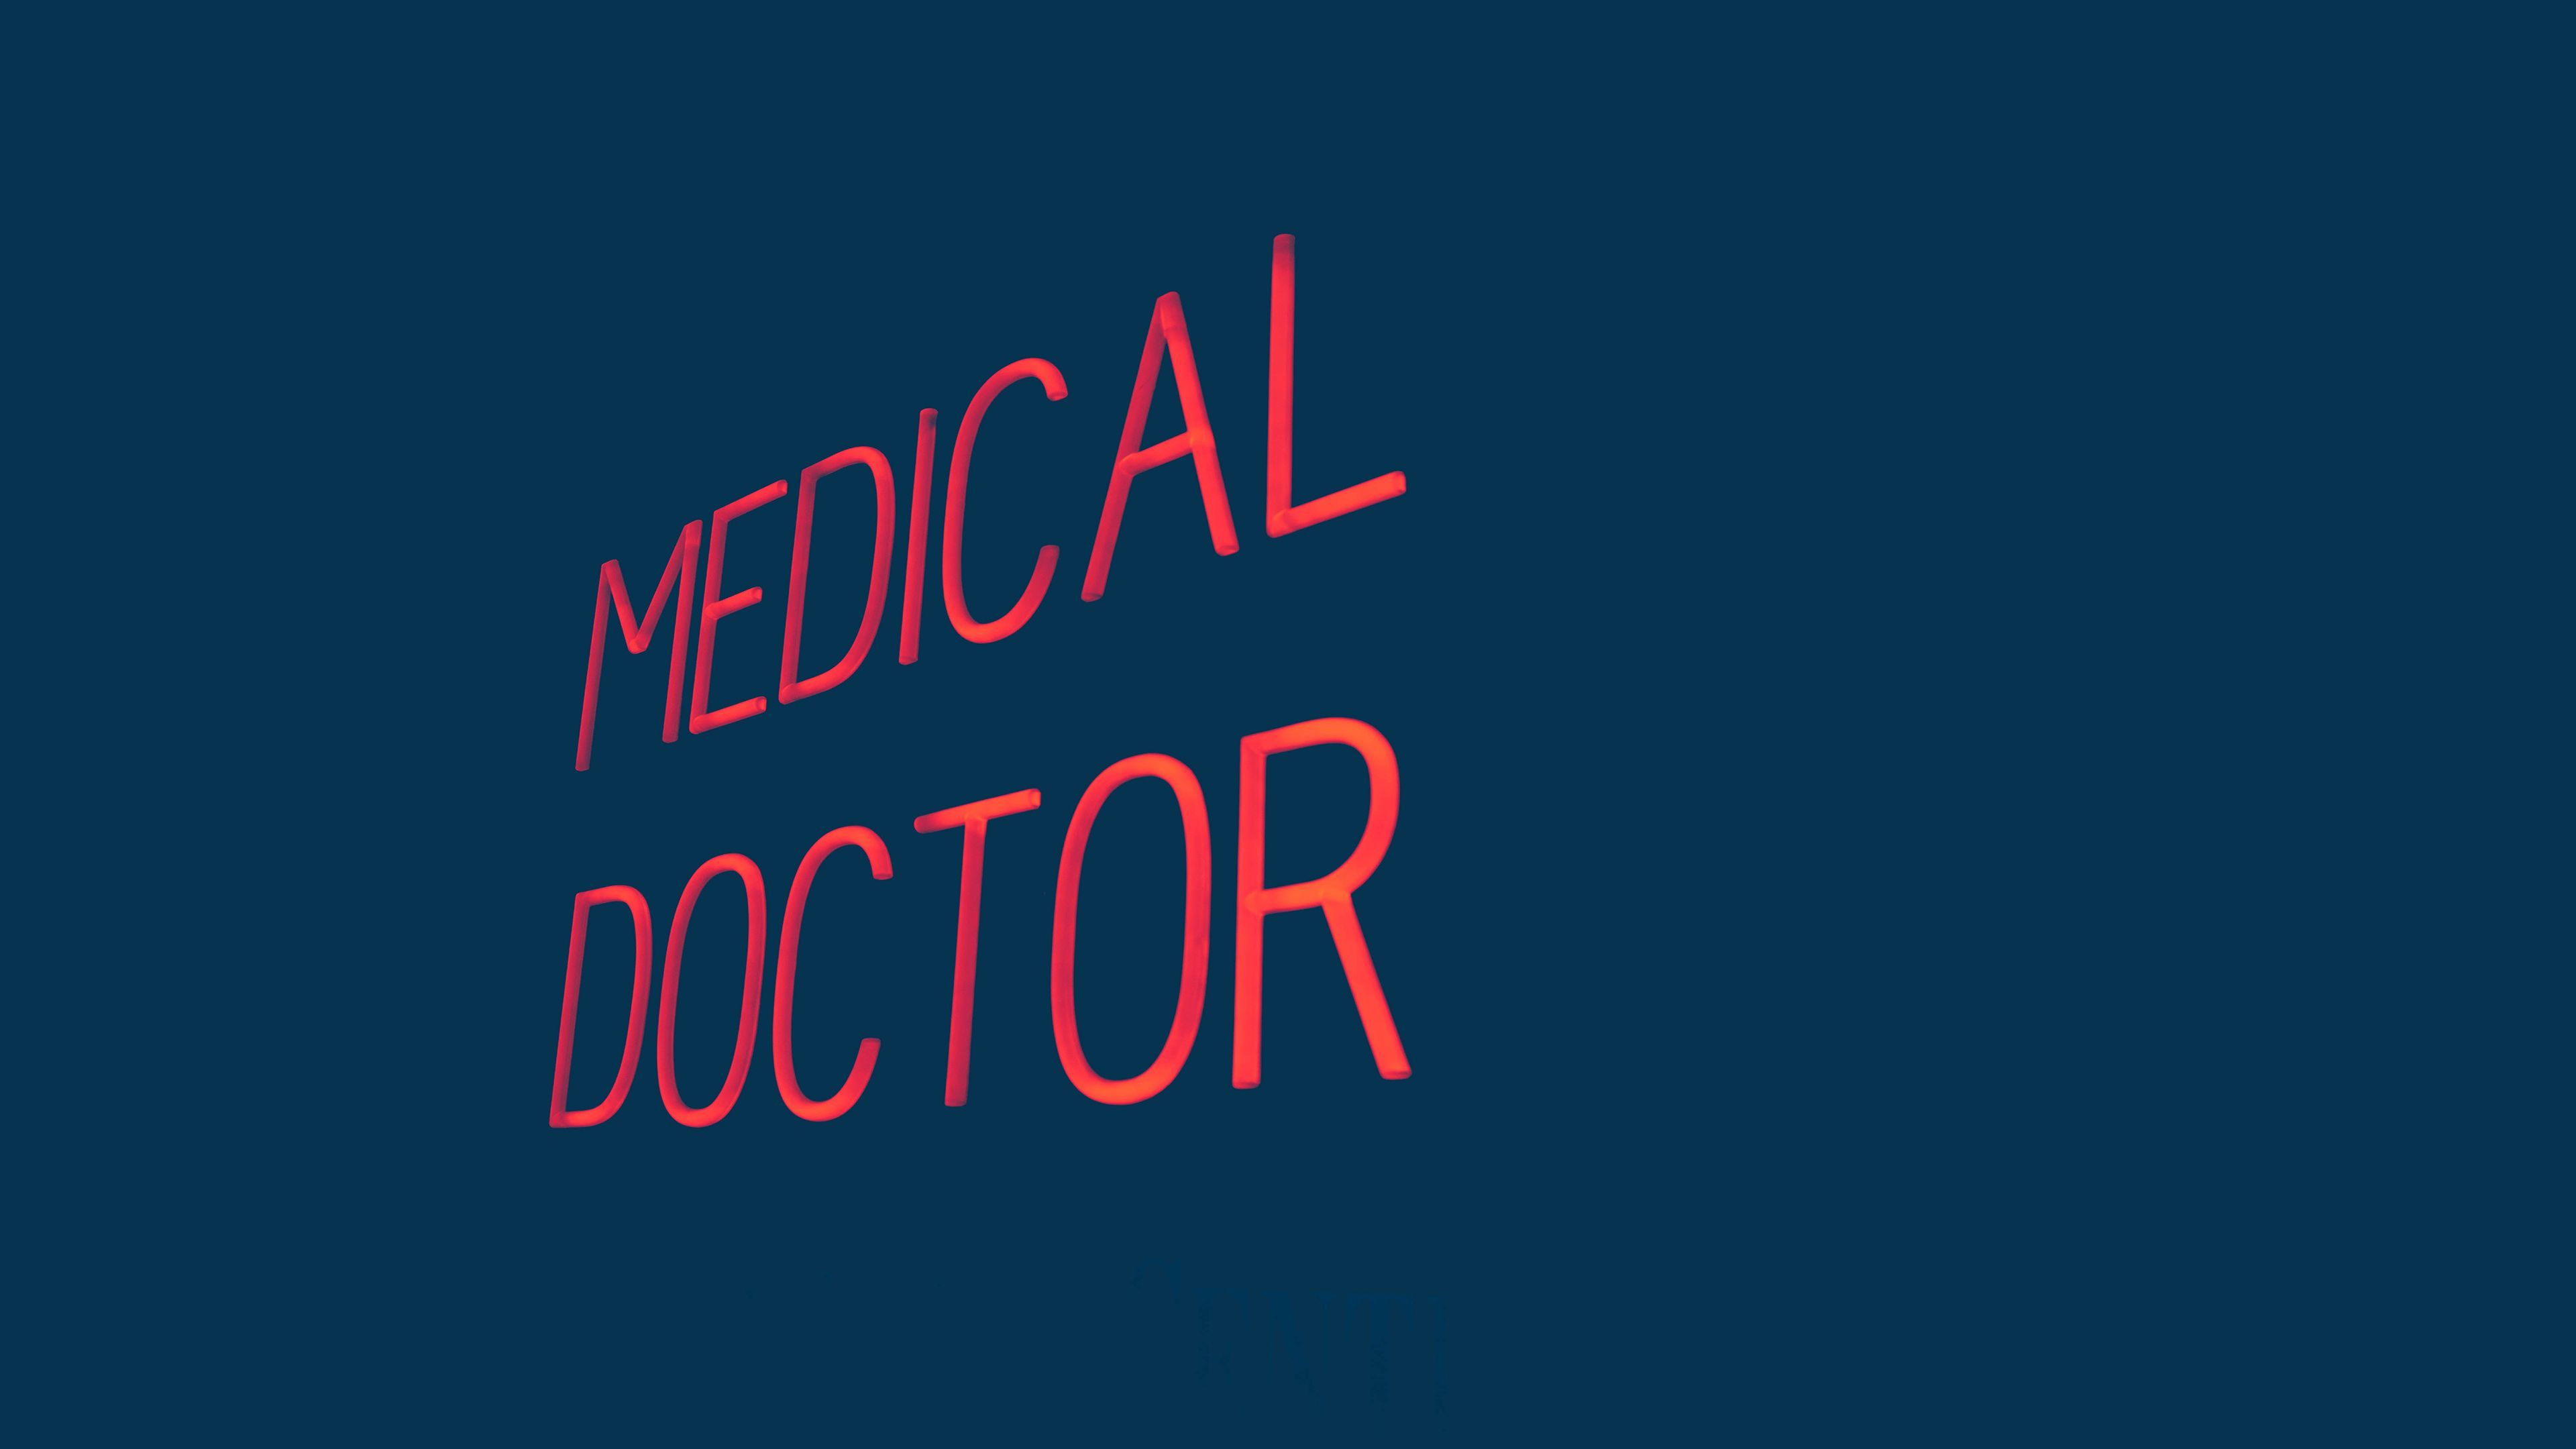 3840x2160 Medical Doctor - An original photograph by me [3840x2160 ...